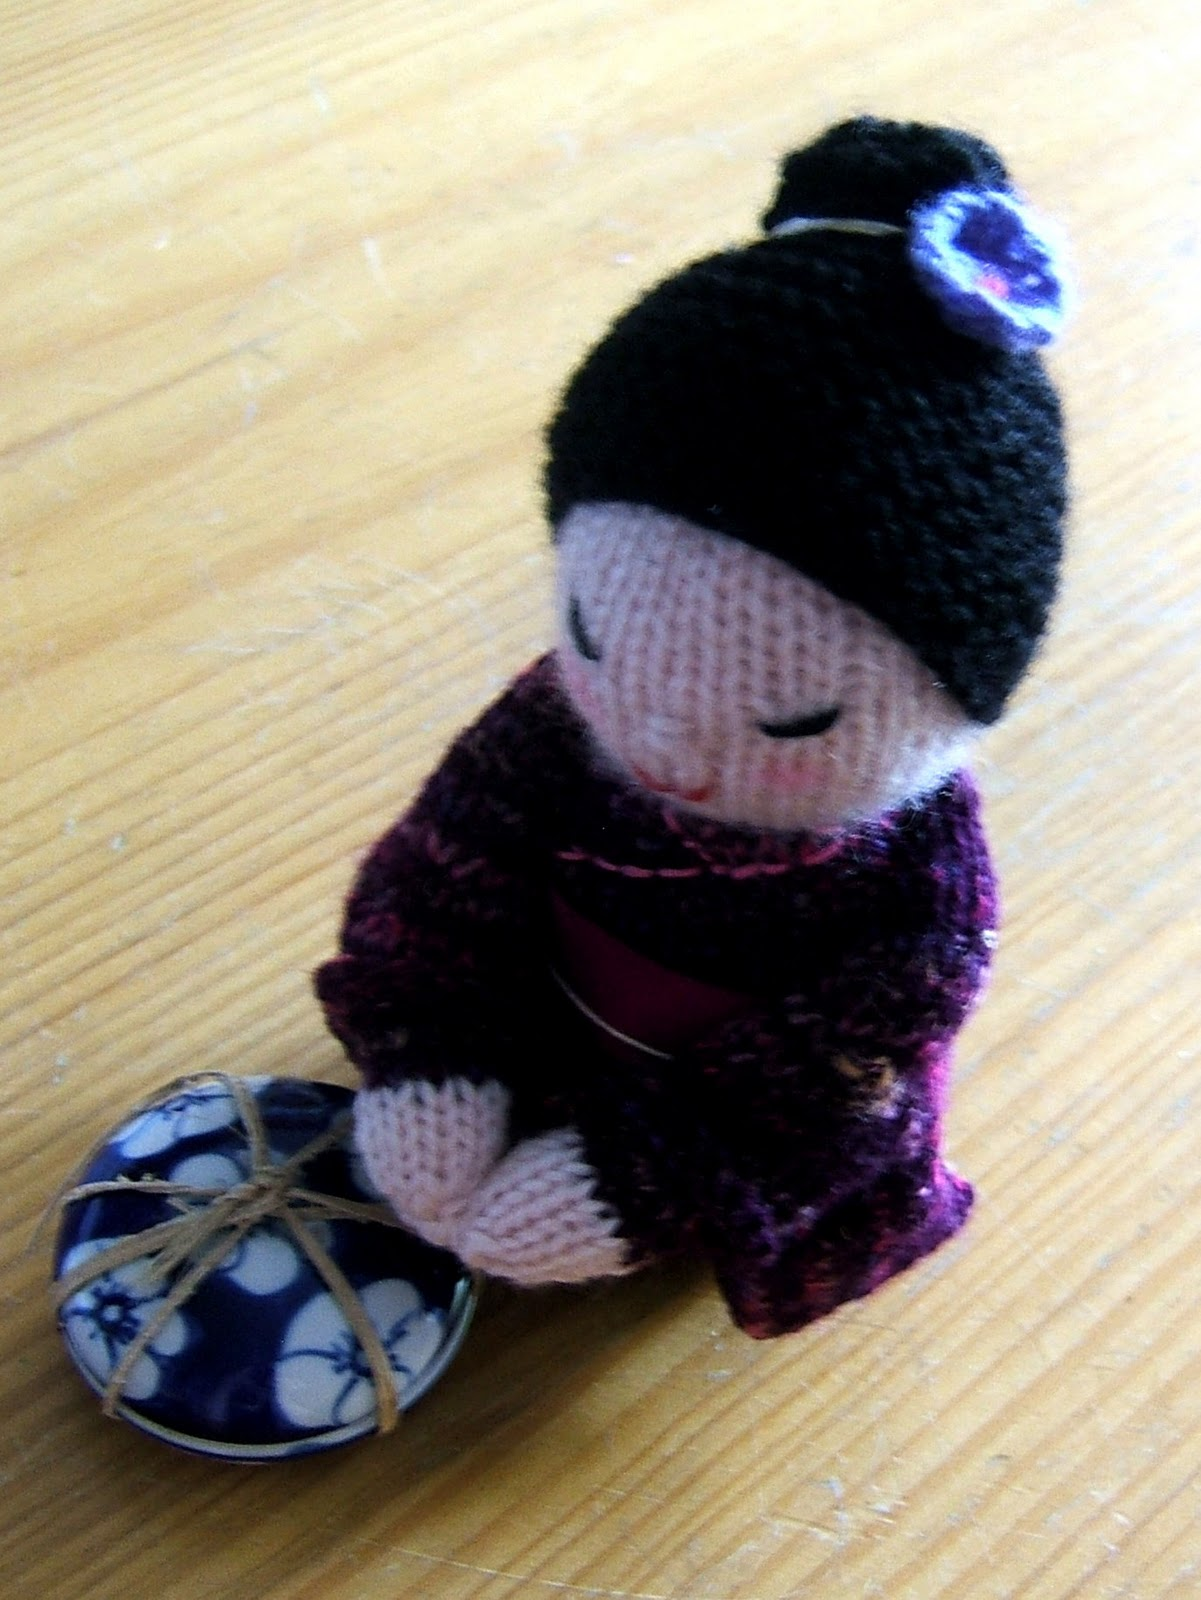 Kokeshi Doll Knitting Pattern : aussie knitting threads: Kokeshi Doll